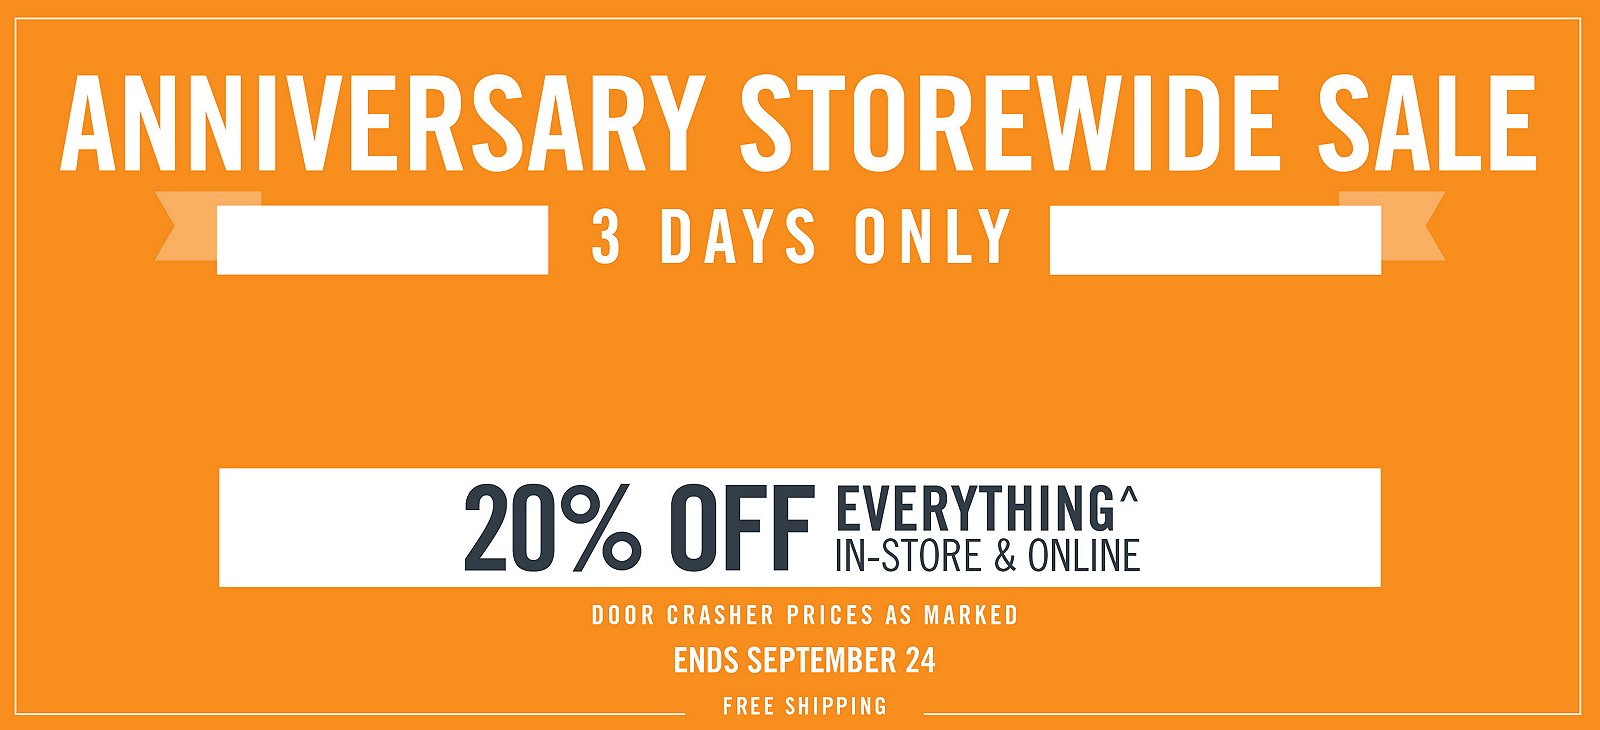 ccf8e6e5b0b Mark's Canada is having a storewide Anniversary Sale that offers 20% off  everything, as well as free shipping. This deal is valid for 3 days only,  ...